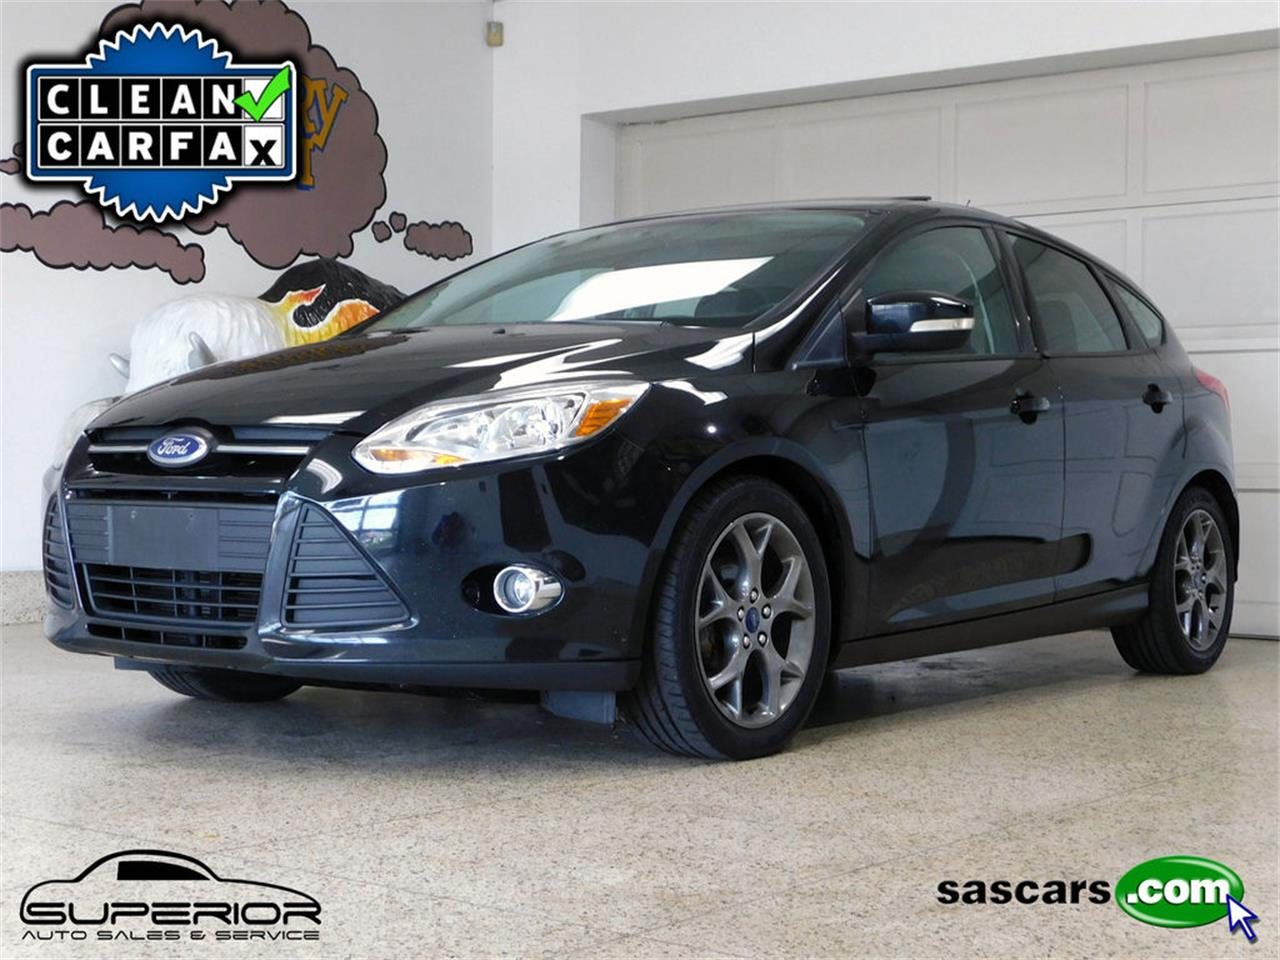 2013 Ford Focus (CC-1386663) for sale in Hamburg, New York